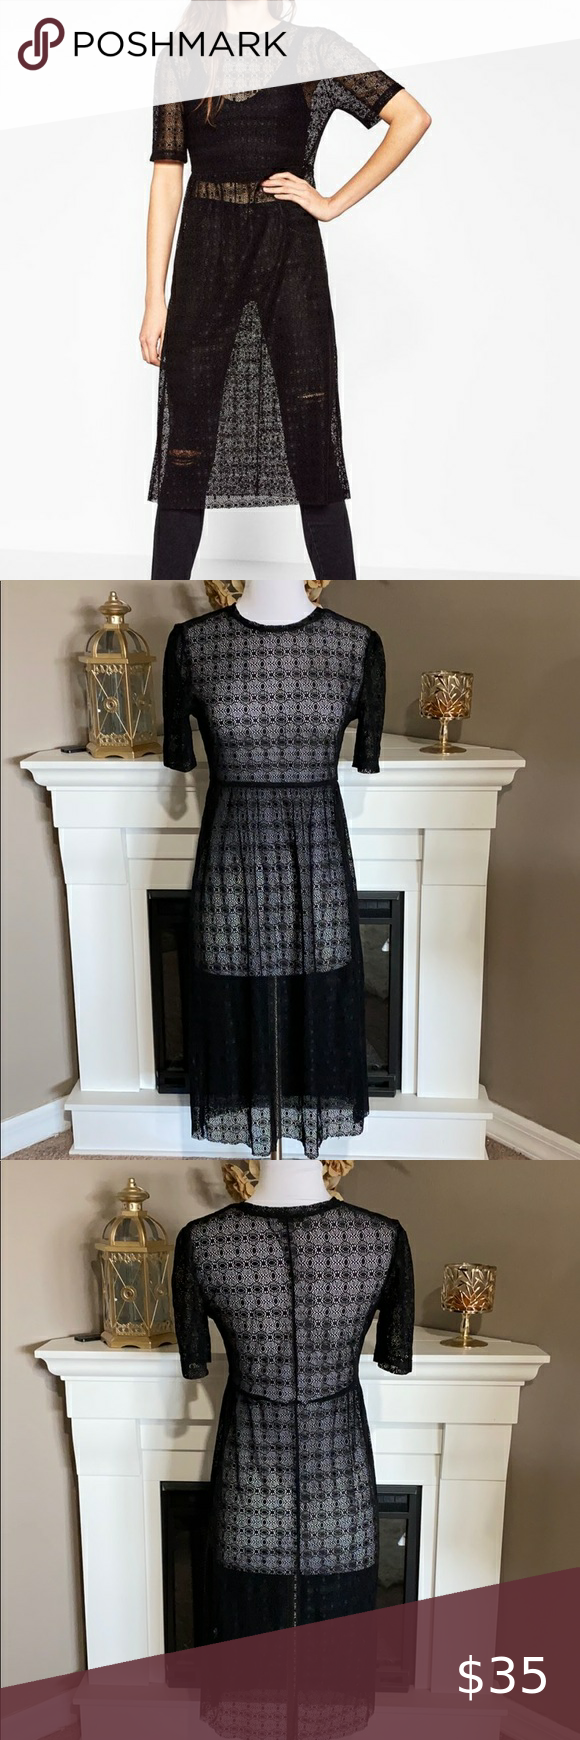 Zara Black Sheer Lace Short Sleeve Dress Black Sheer Lace Dress Or Swimsuit Cover Up With Short Sleeve Sheer Lace Dress Sheer Lace Shorts Short Sleeve Dresses [ 1740 x 580 Pixel ]